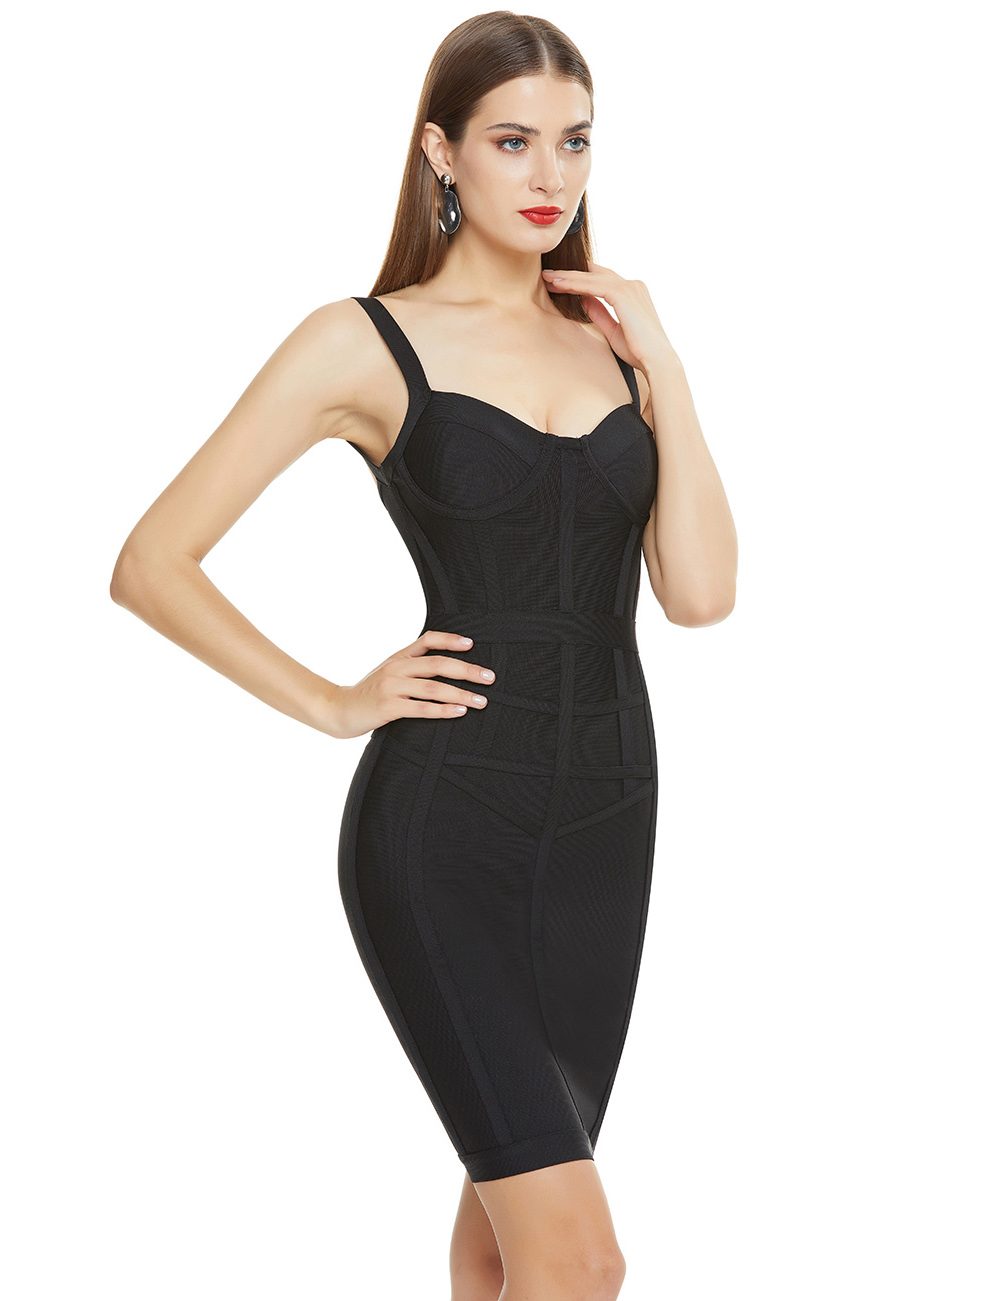 //cdn.affectcloud.com/hexinfashion/upload/imgs/dresses/Bandage_Dresses/VZ191303-BK1/VZ191303-BK1-201911225dd75b394f777.jpg